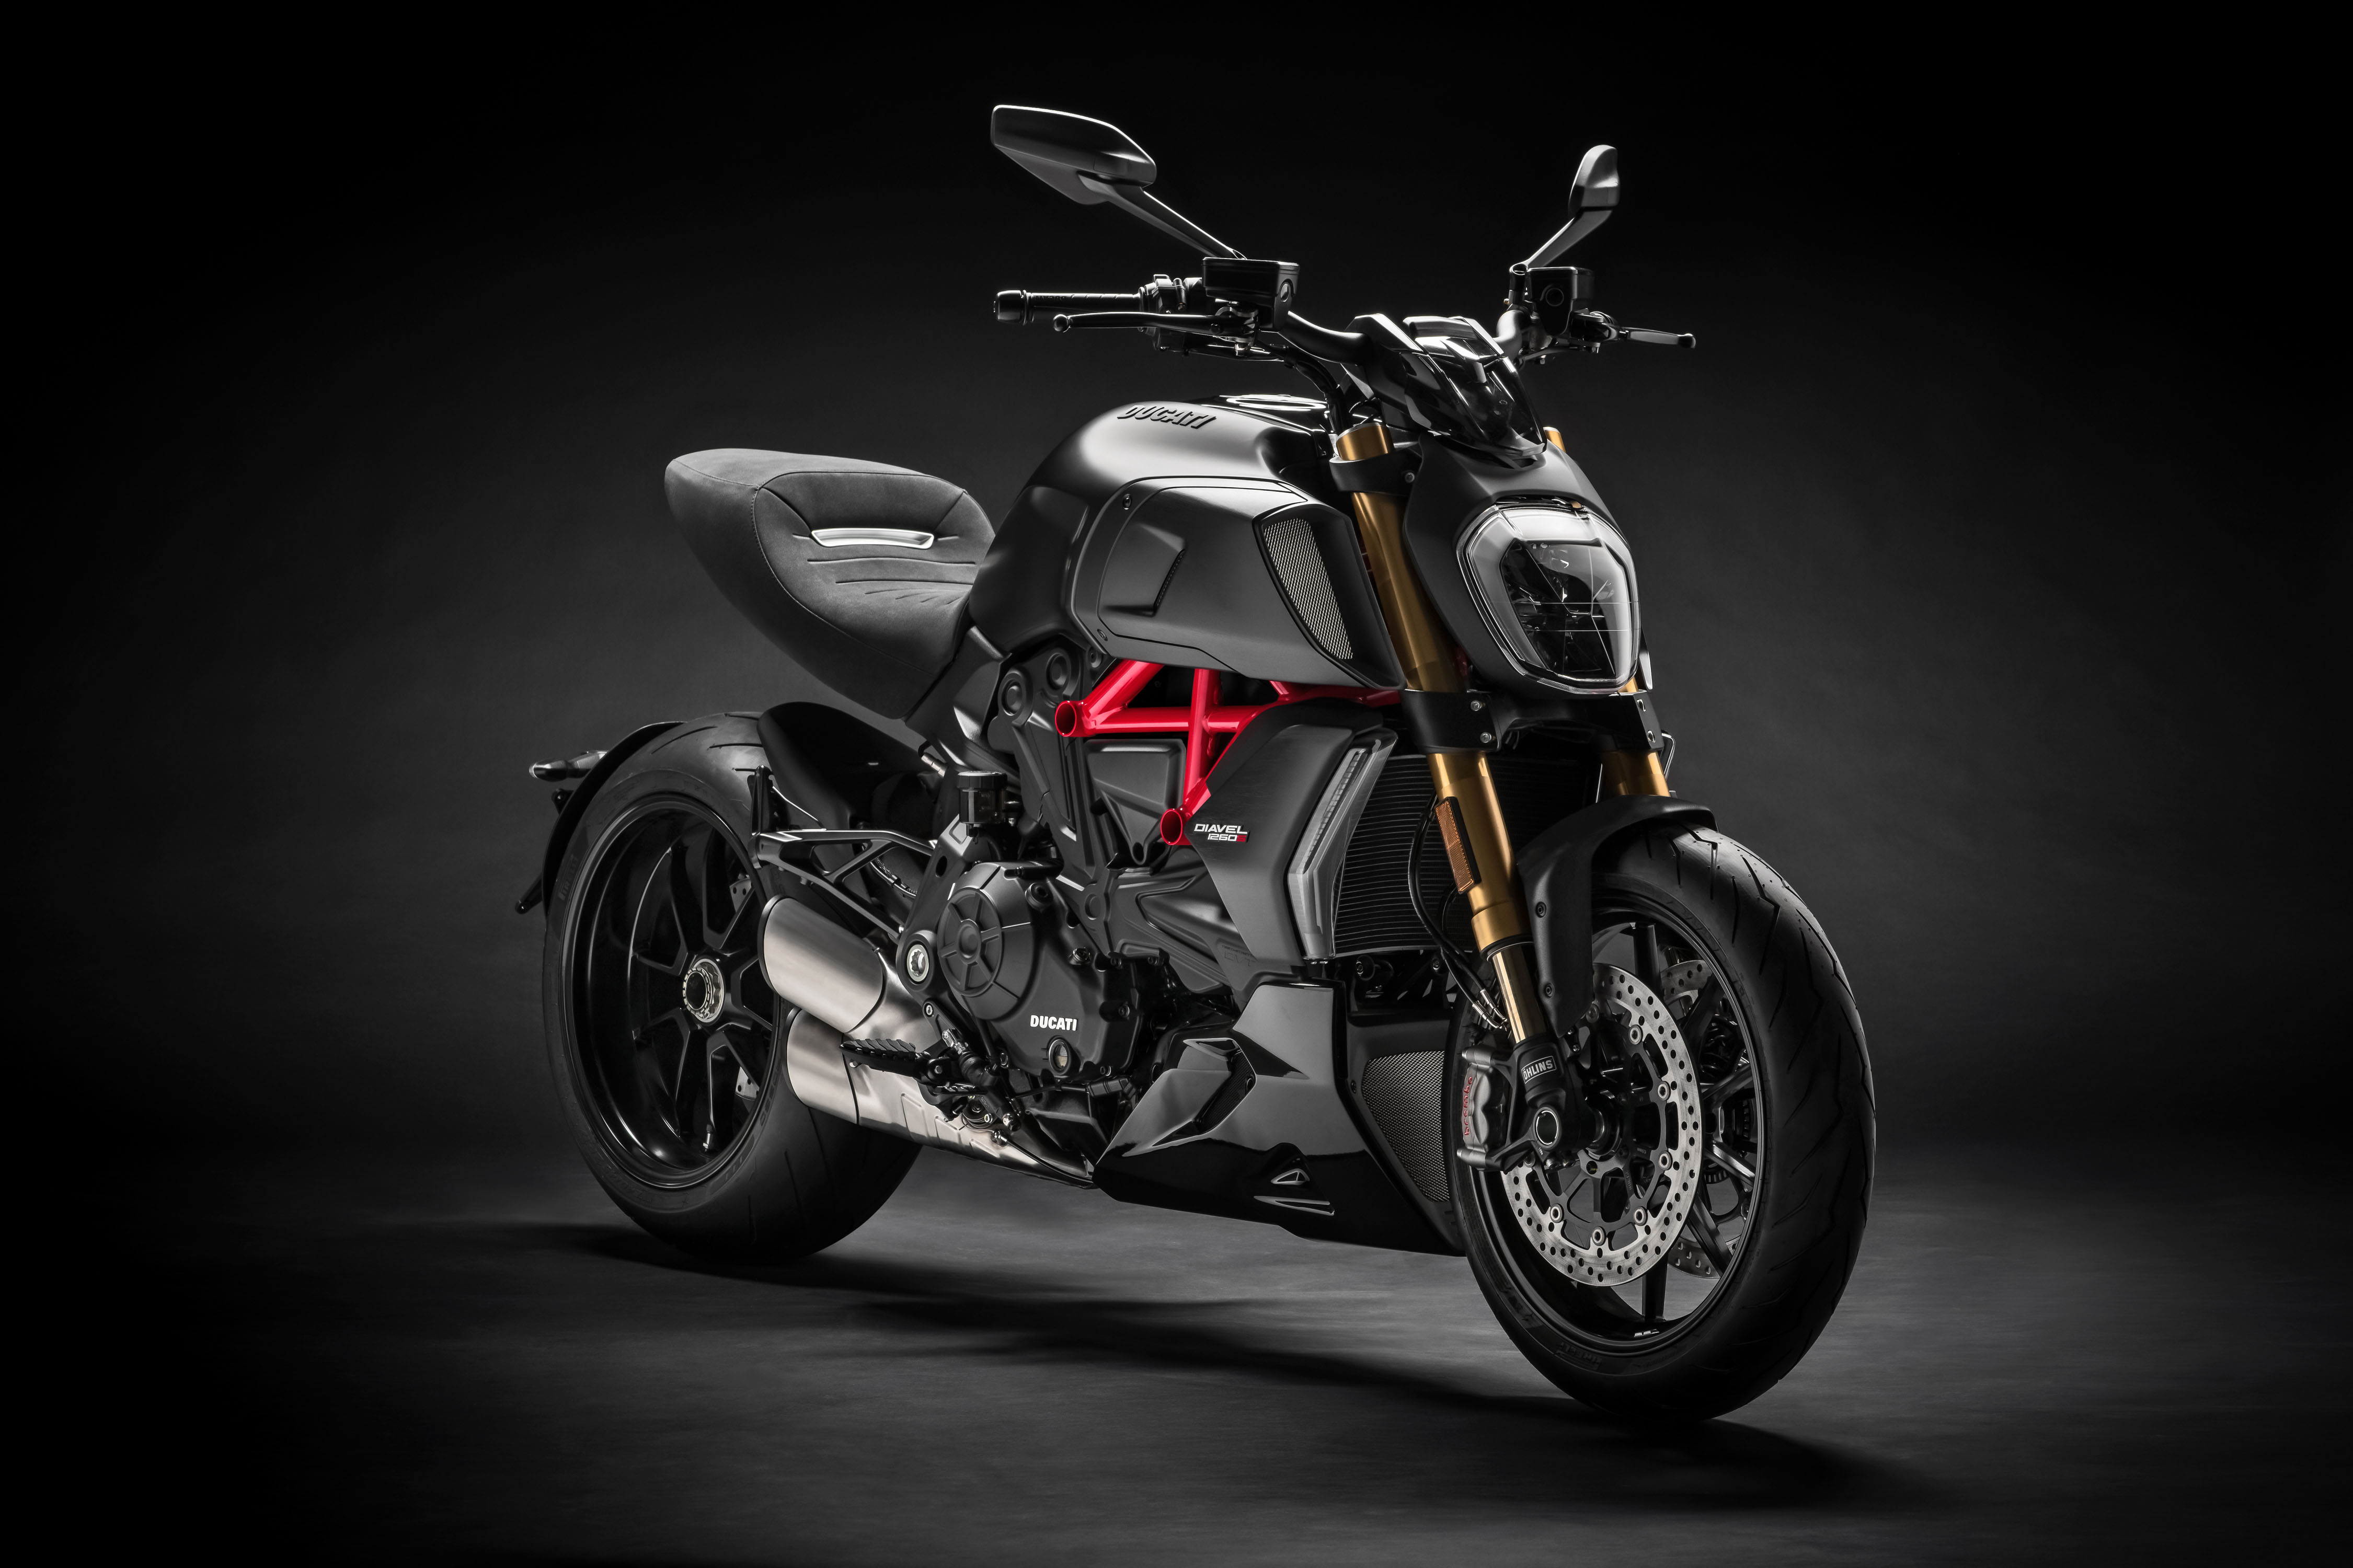 2019 Ducati Diavel 1260s Review First Ride Motorcycle Com